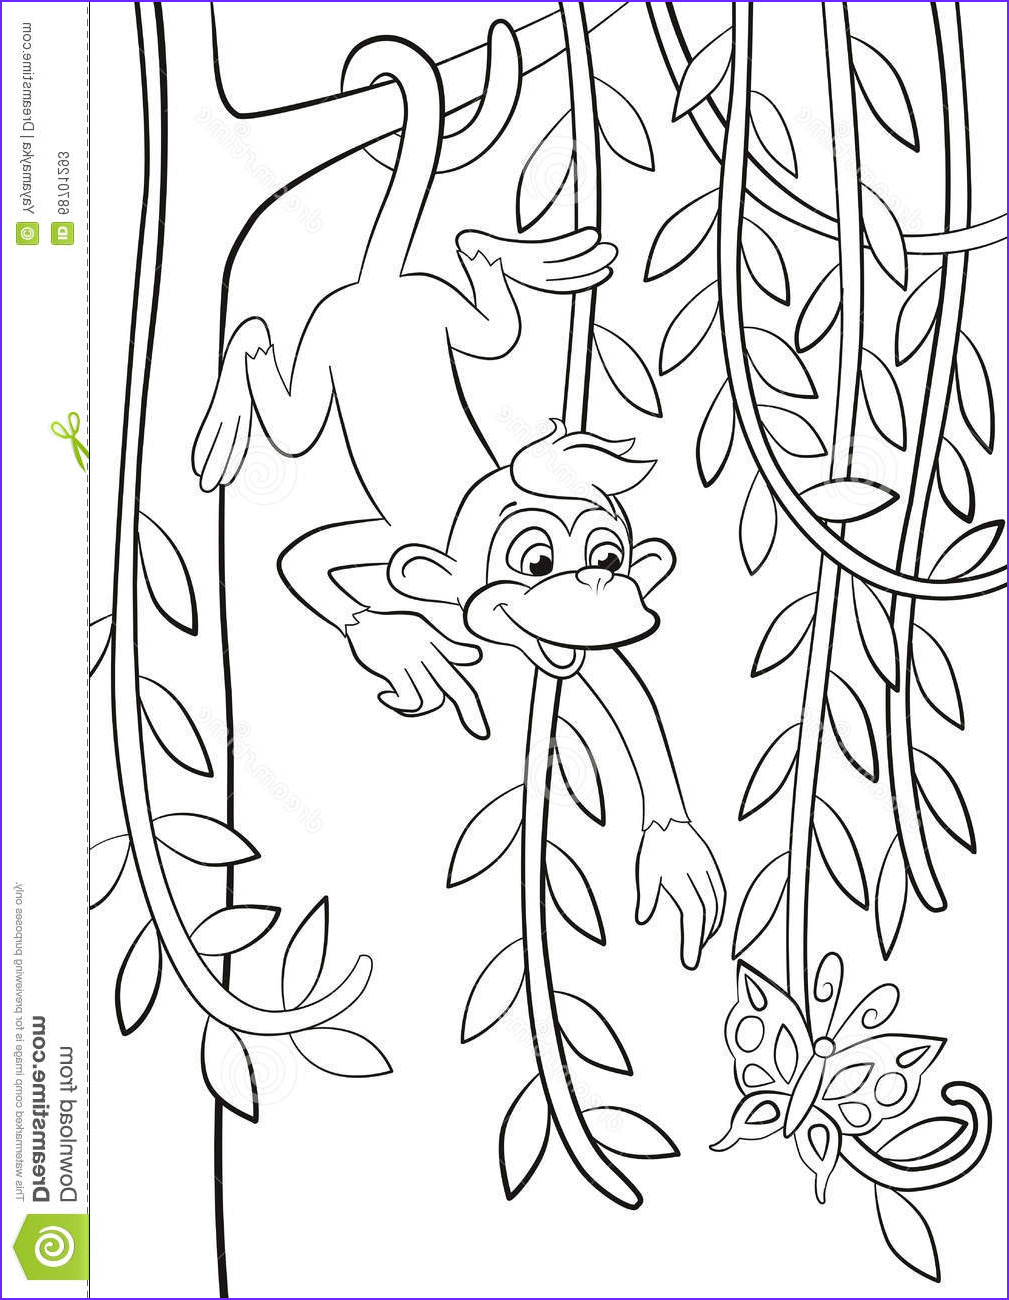 awesome coloring pages of monkeys in